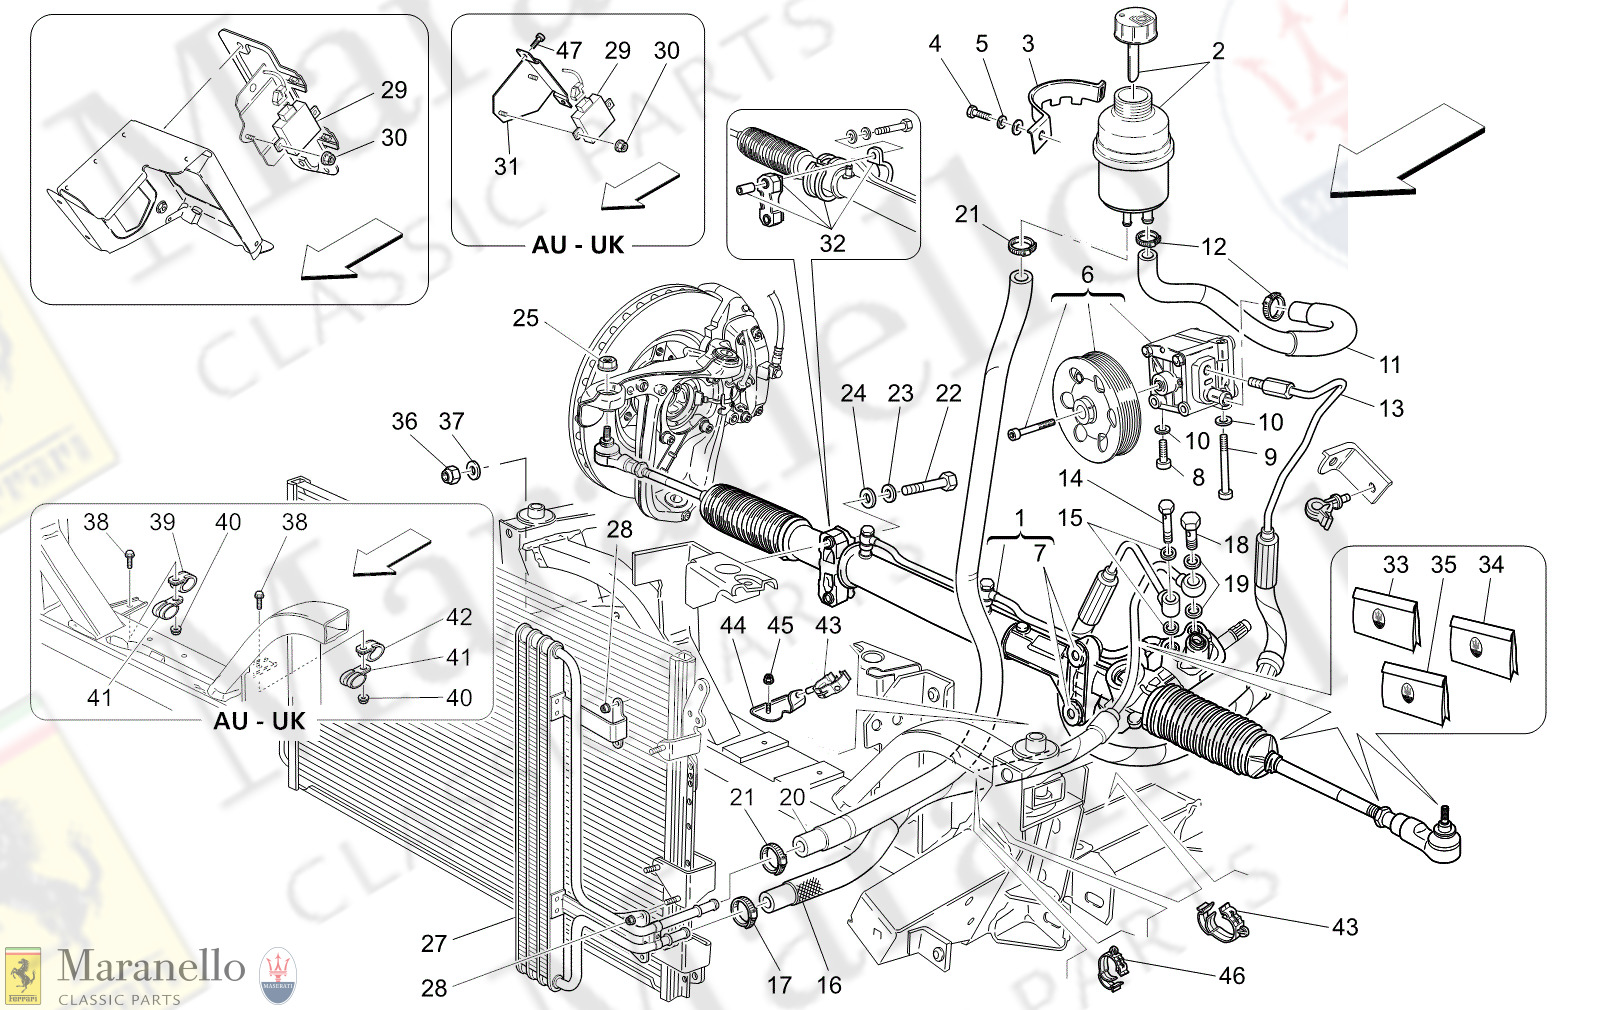 05.10 - 1 - 0510 - 1 Complete Steering Rack Unit